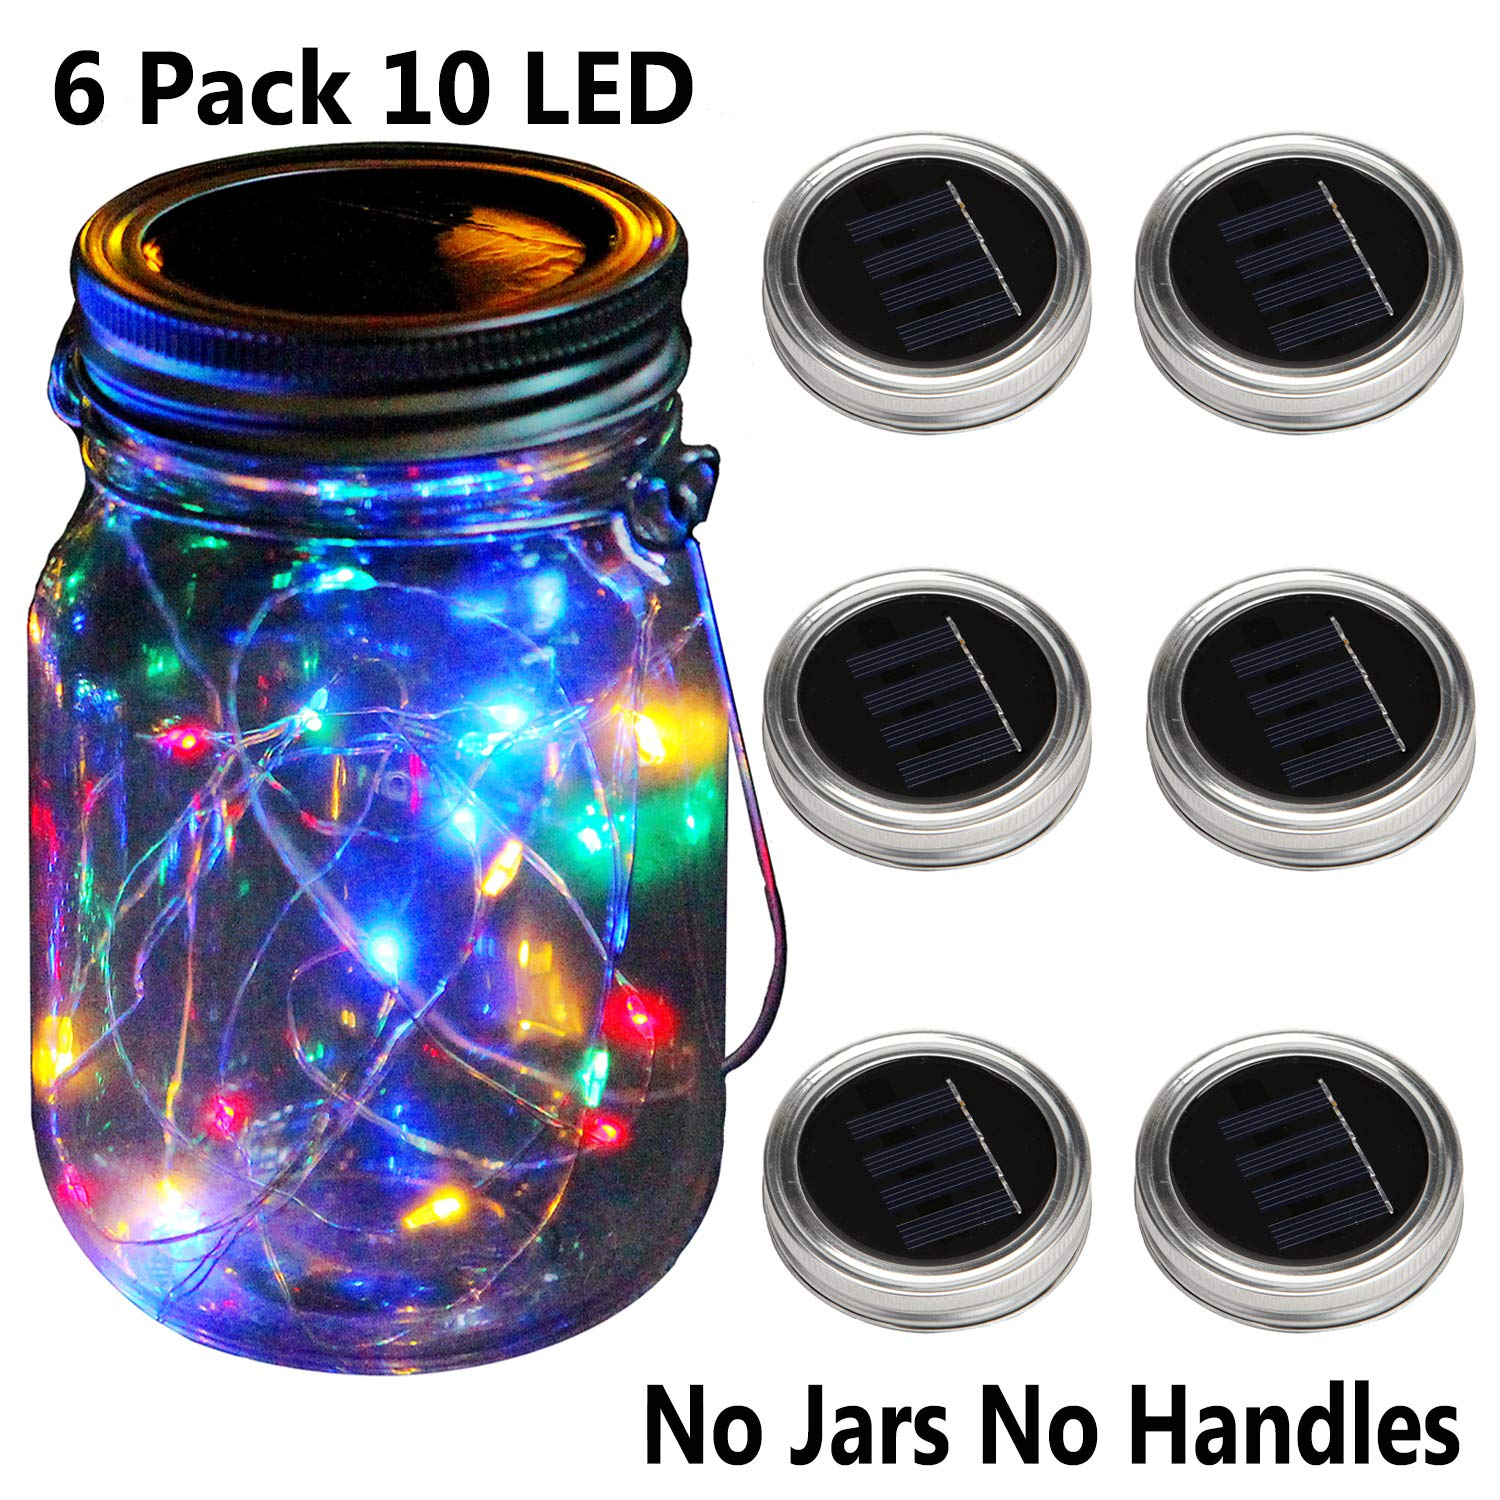 KZOBYD 6 Pack Mason Jar Lid Solar Waterproof Fairy Starry Firefly Lights for Regular Mouth Mason Jar Lantern on Patio Yard Pathway Festivals Home Decor(Jars and Handles Not Included)